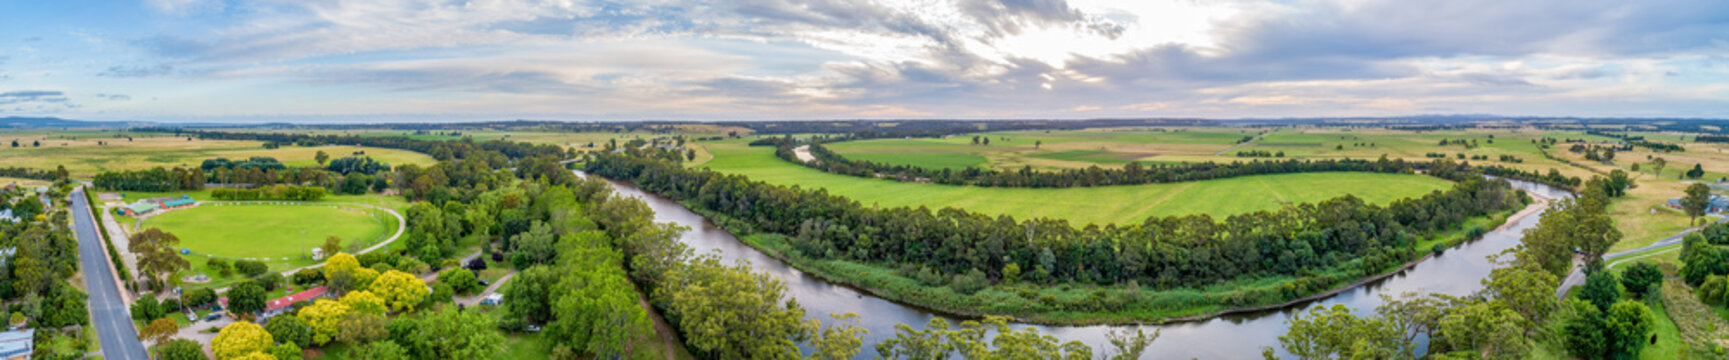 Wide aerial panoramic landscape of the Snowy River and fields in Victoria, Australia